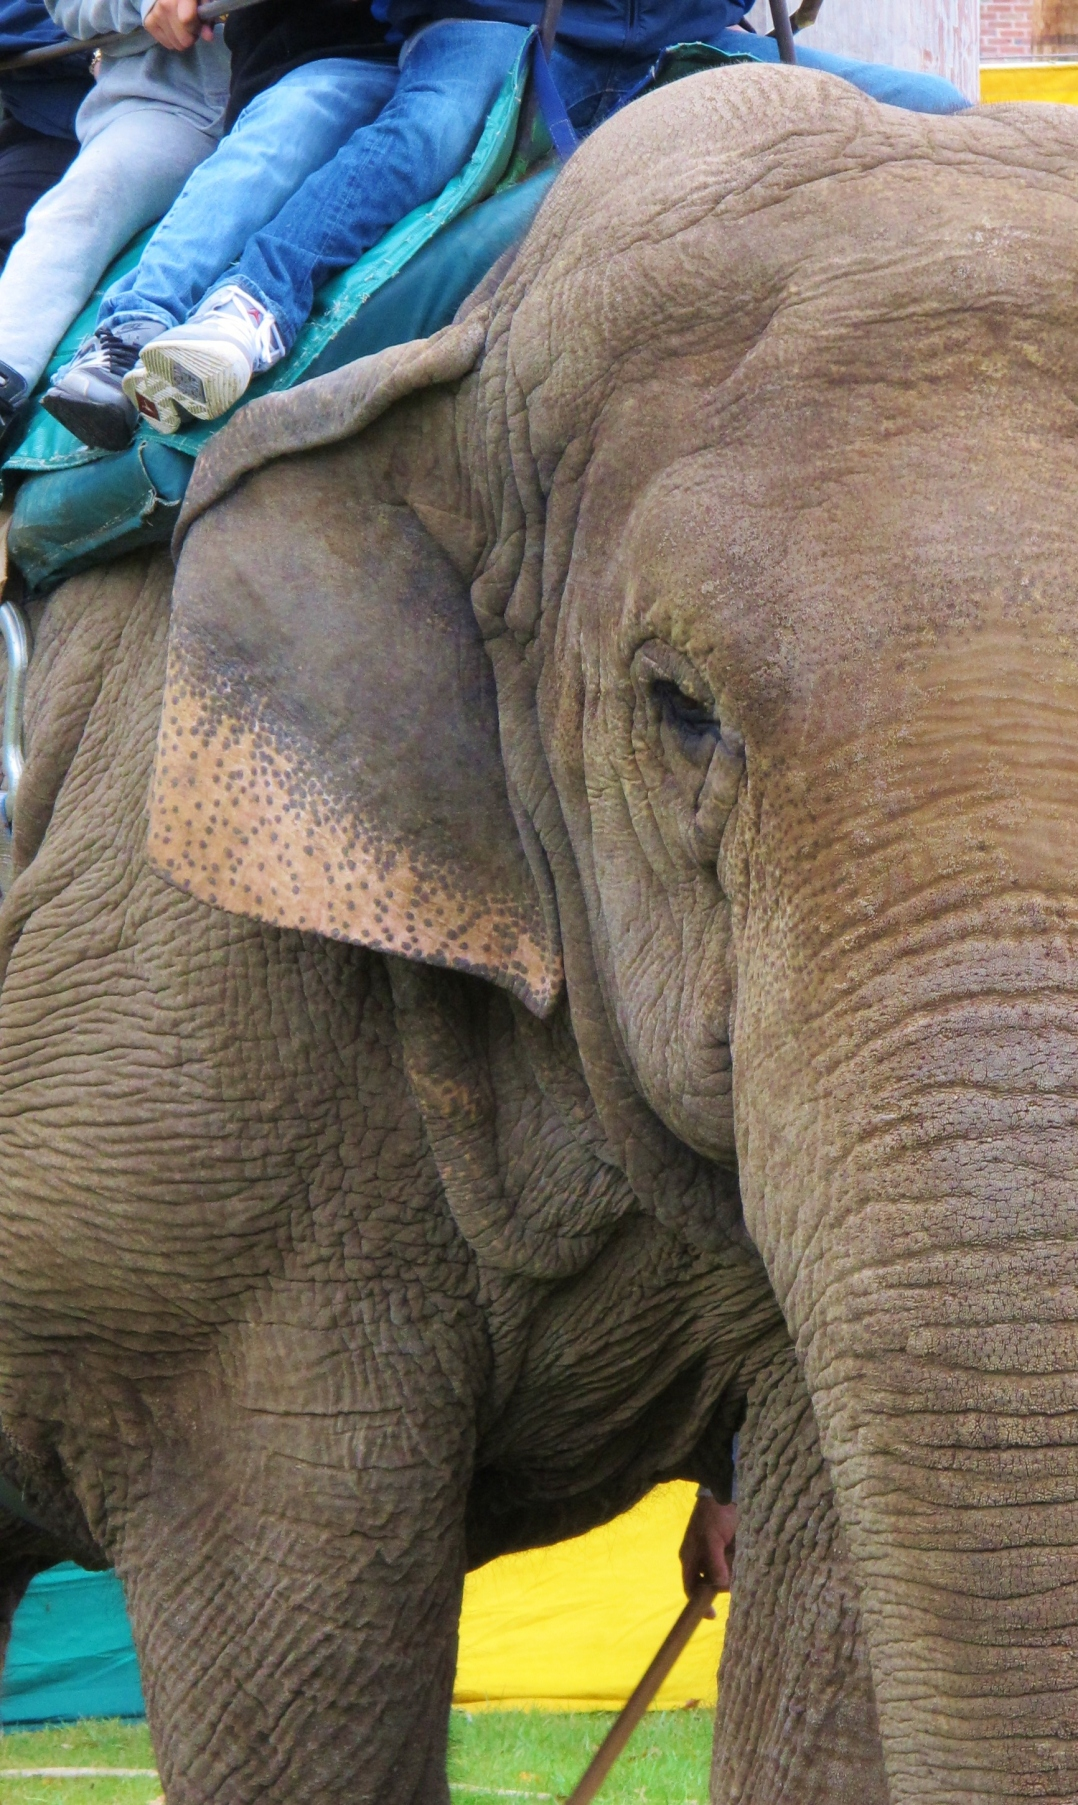 fair-elephant-abuse-2